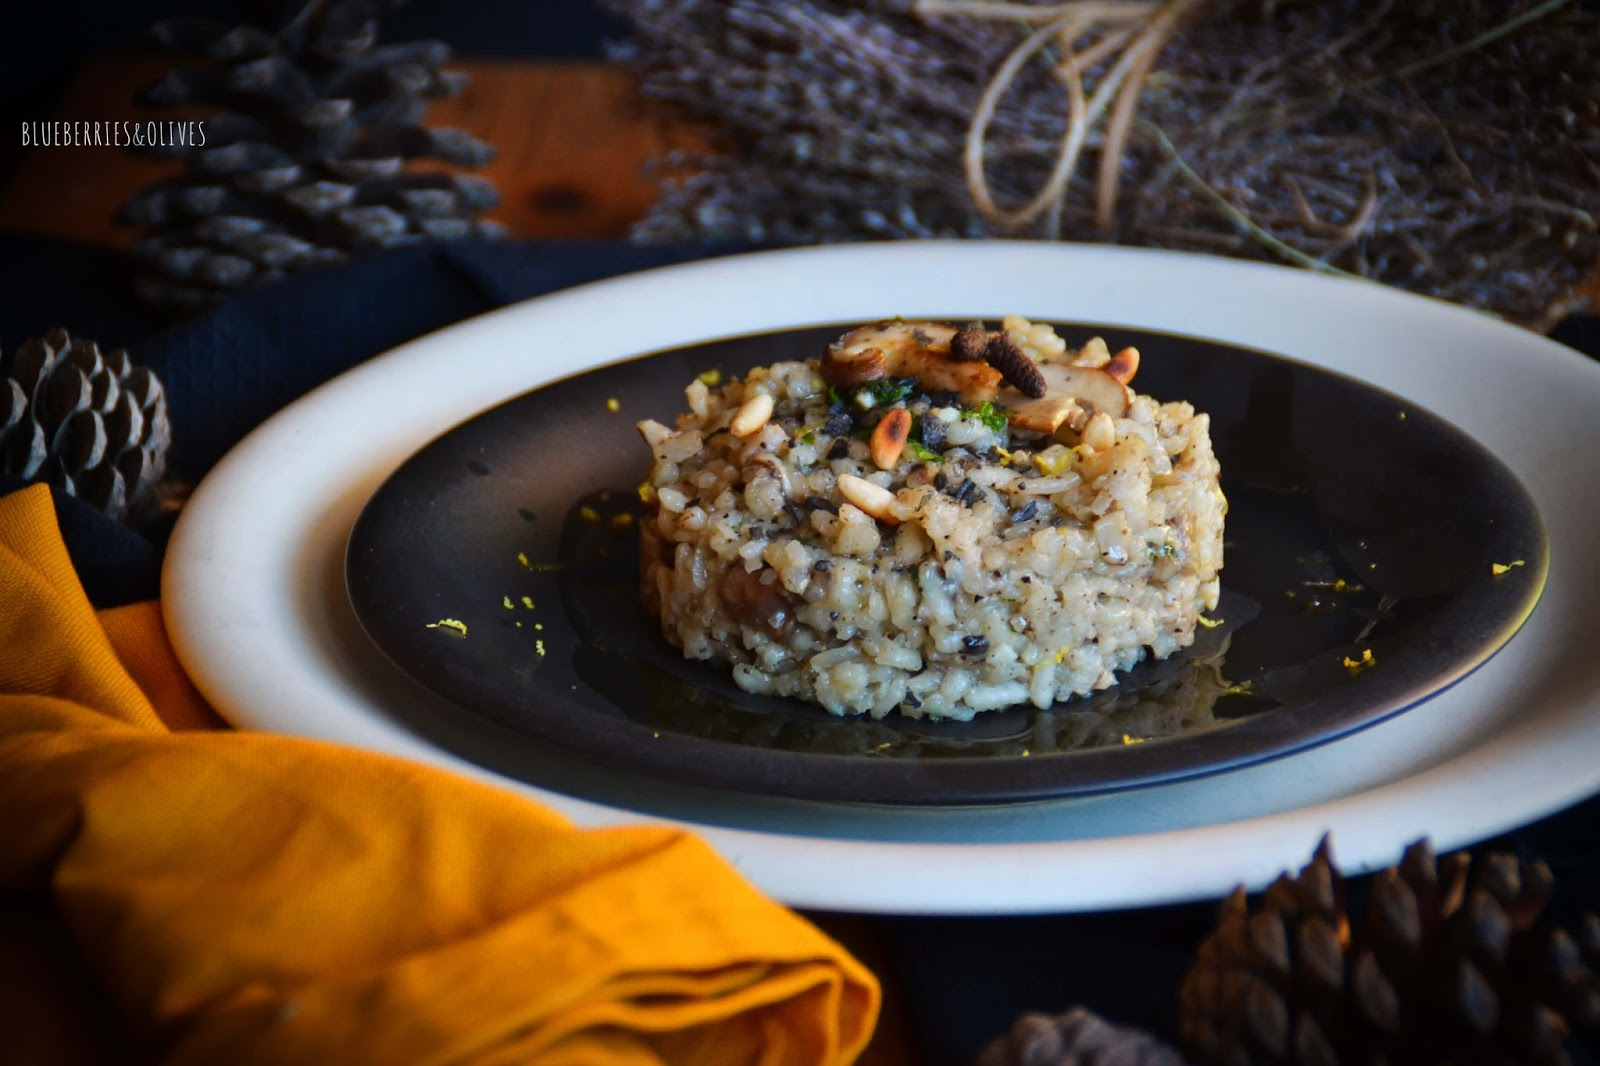 MUSHROOM, PINE NUT AND TRUFFLE RISOTTO